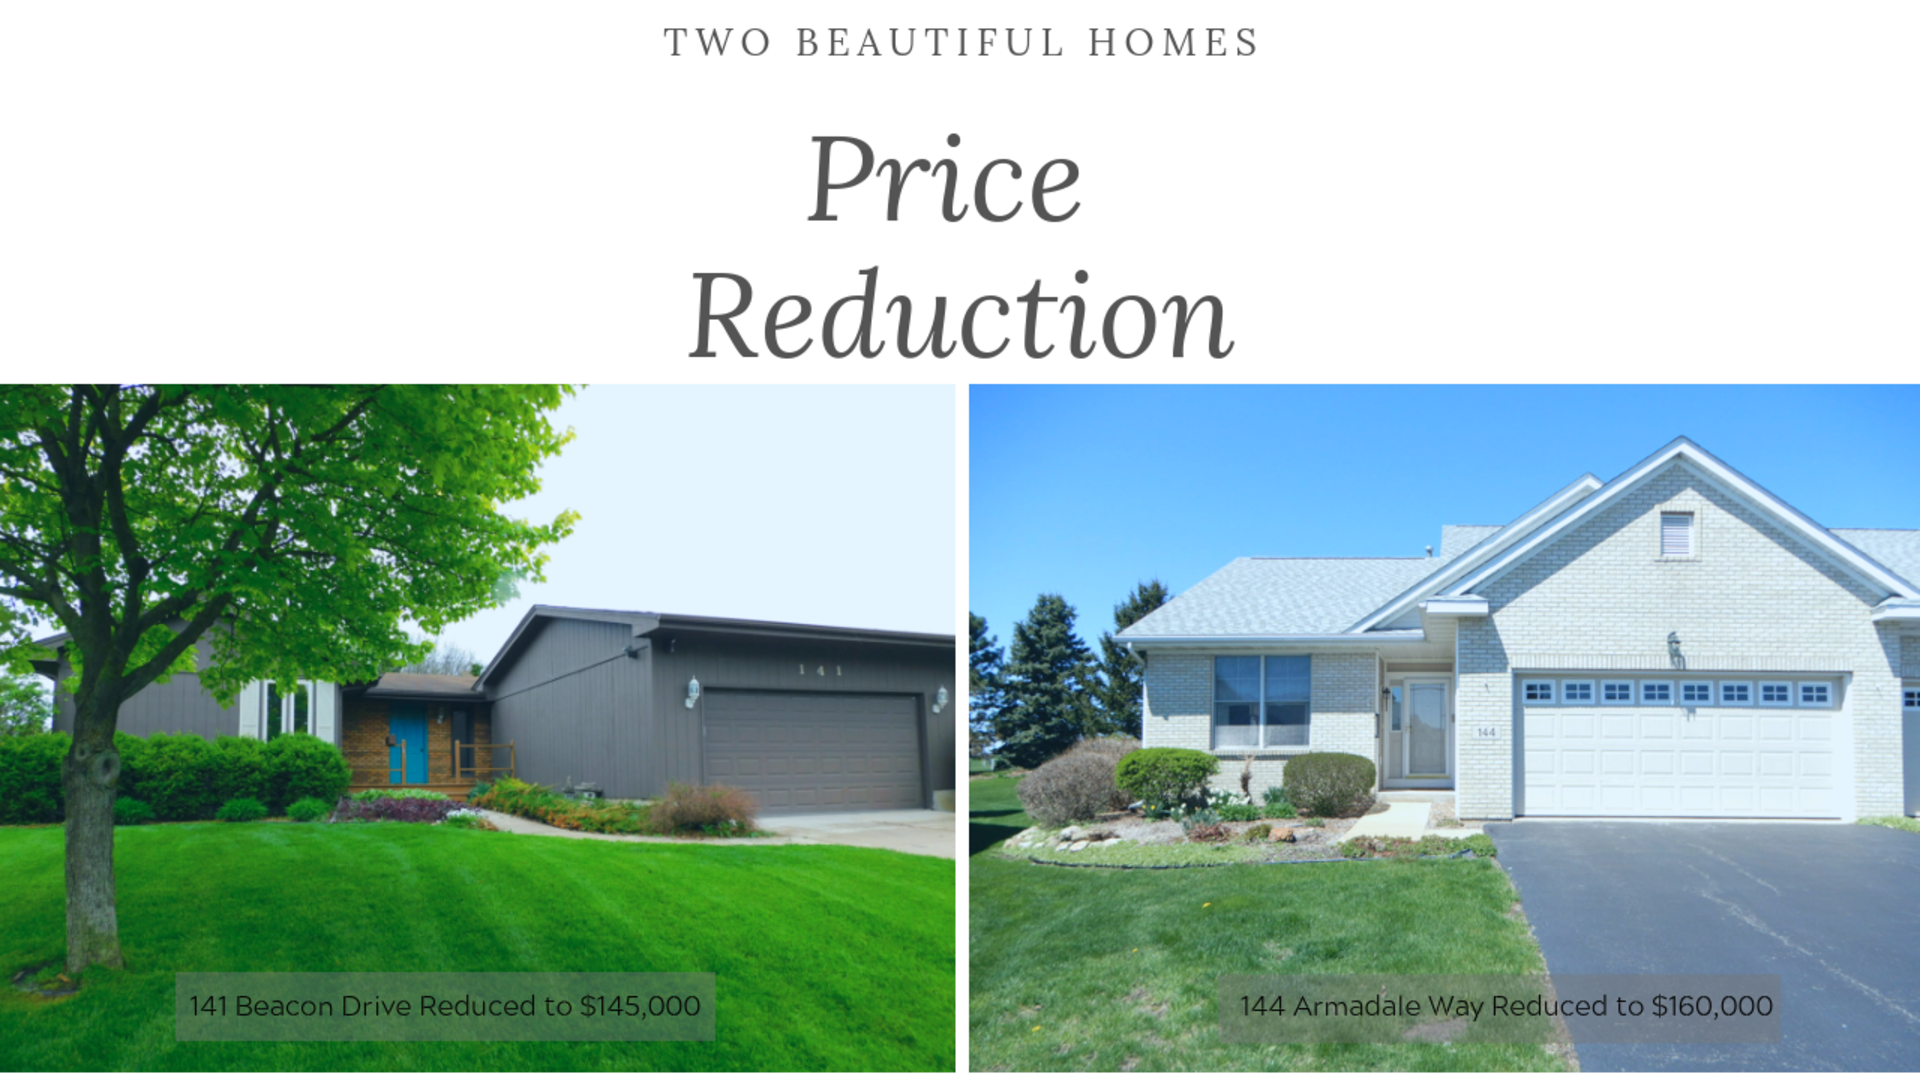 Price Reduction: June 19th 2019